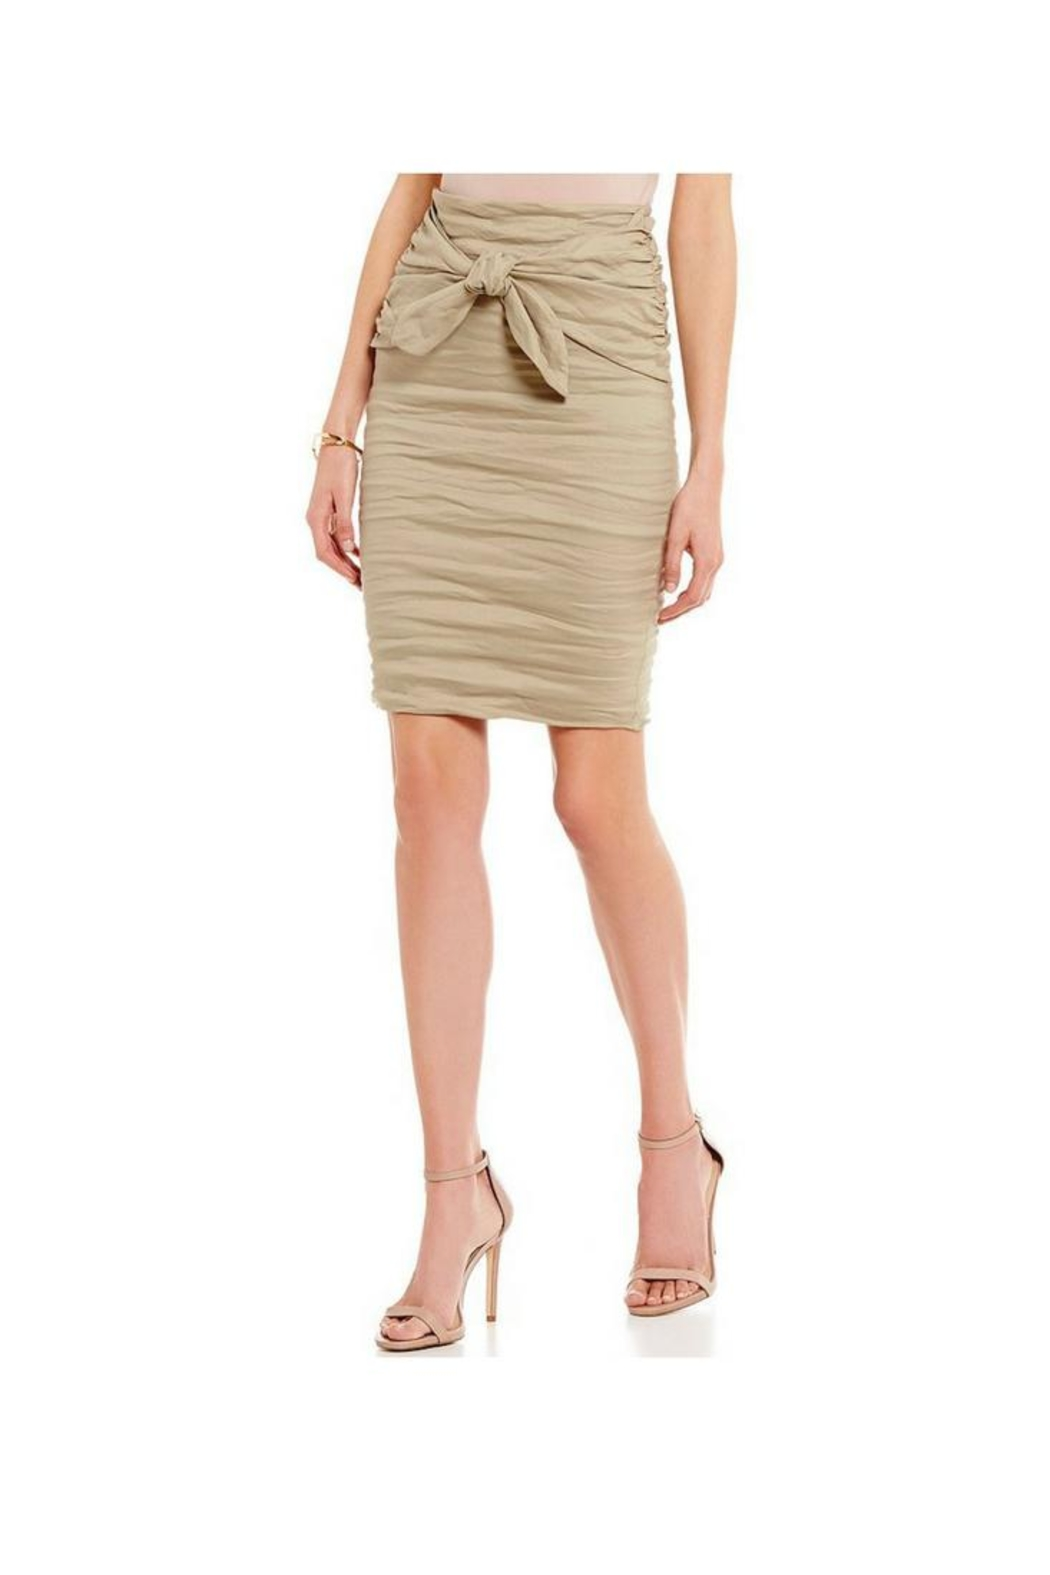 Nicole Miller Flattering Pencil Skirt - Main Image